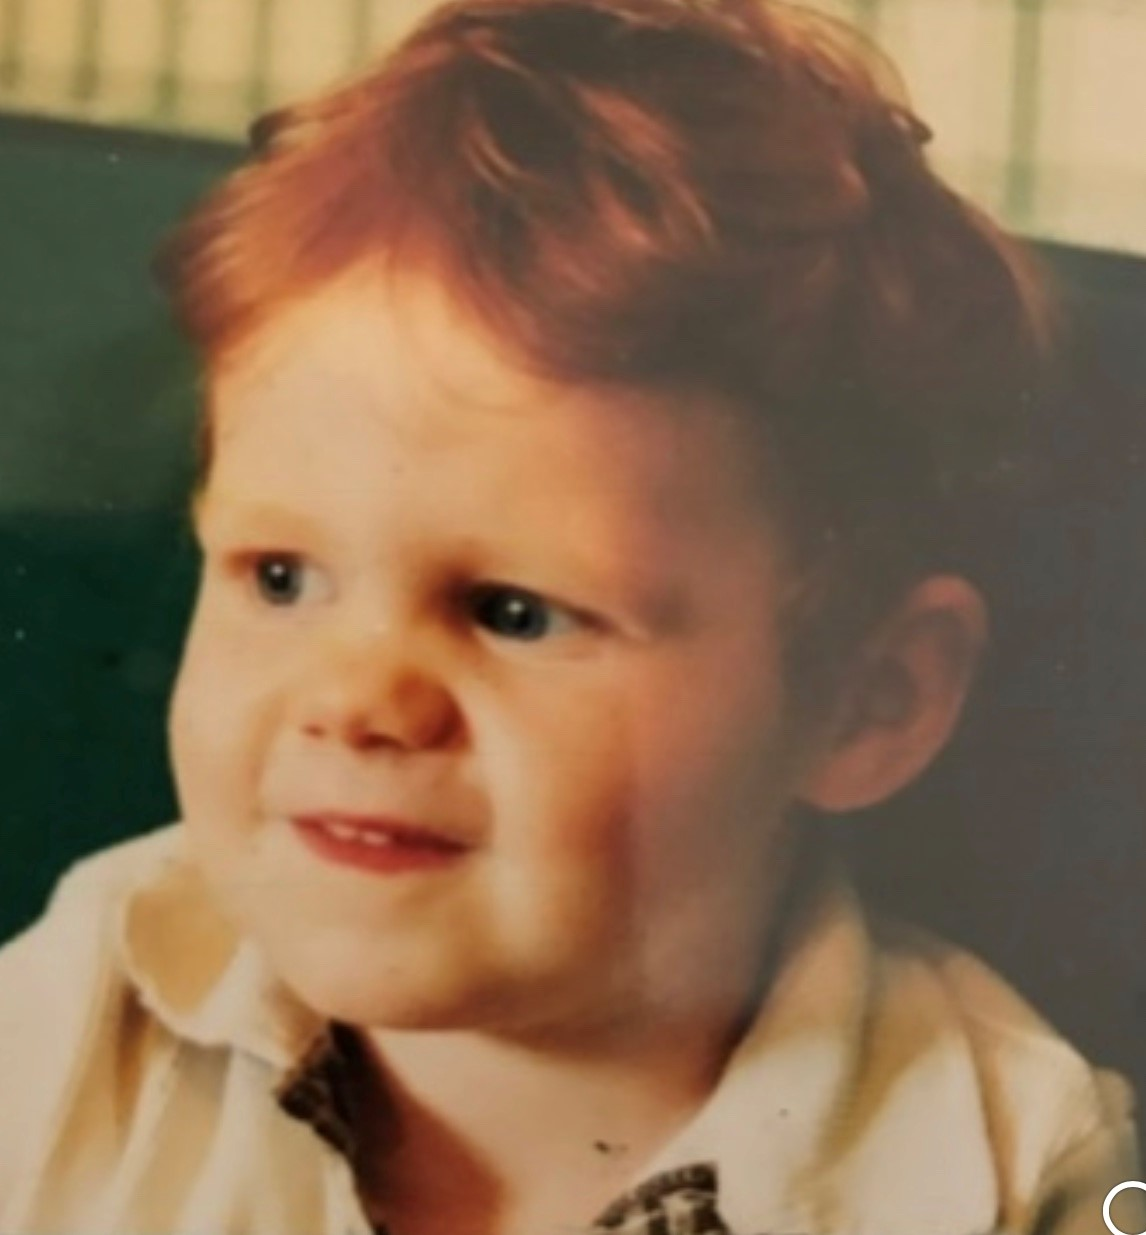 Muir as a toddler with bright red hair and a cheeky grin.